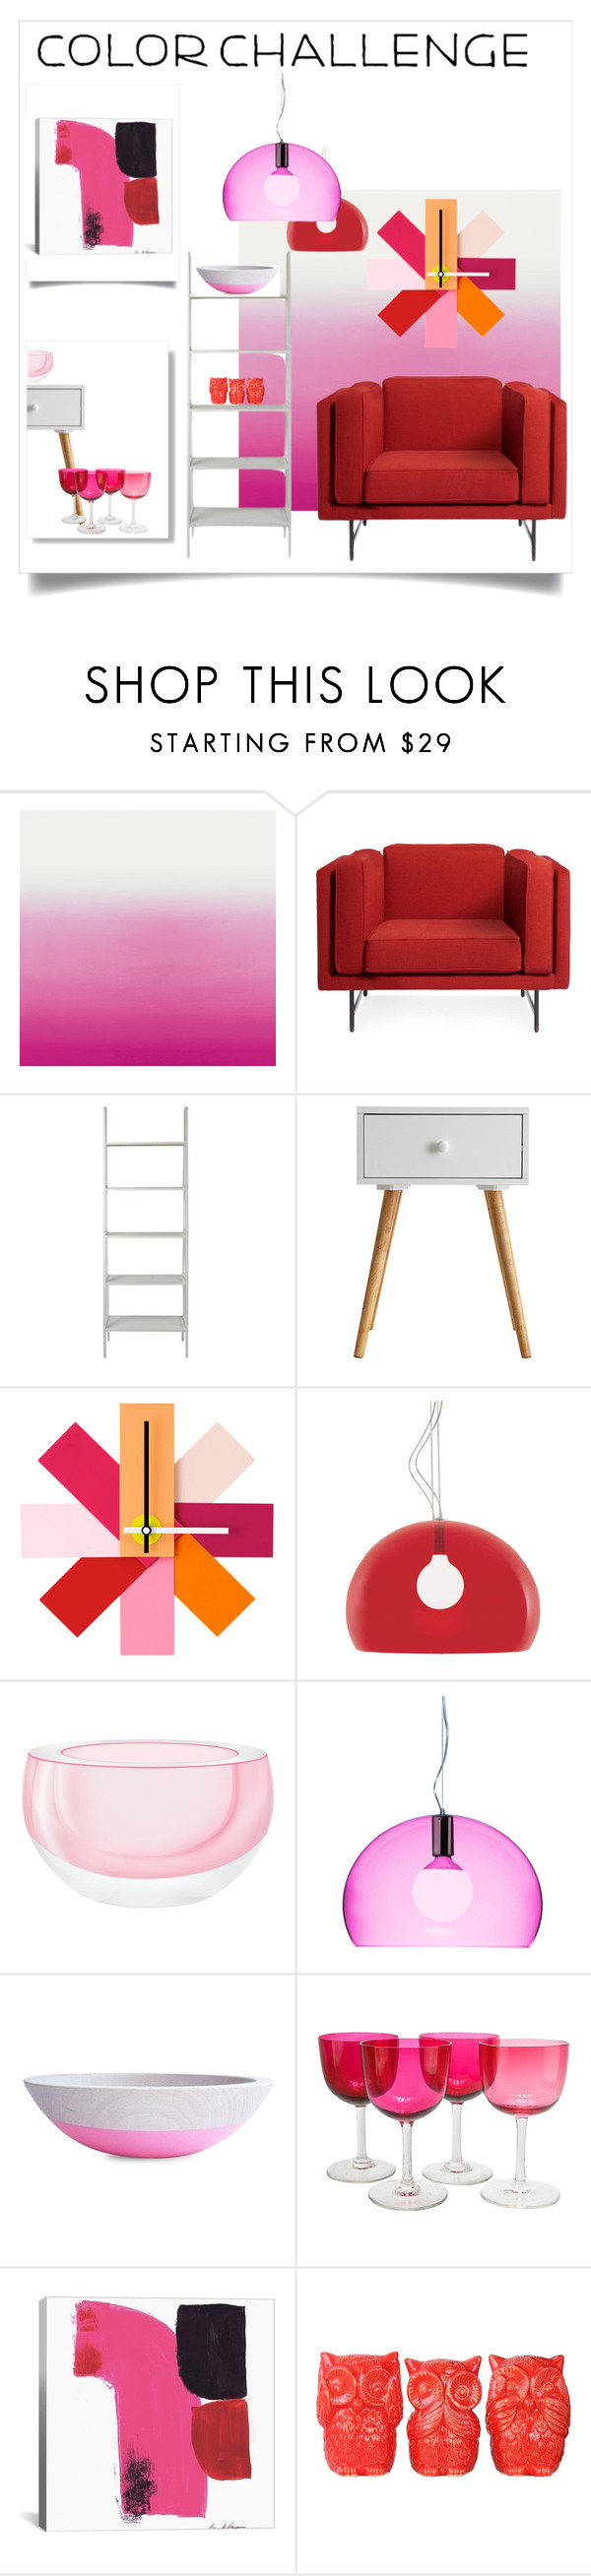 """Untitled #779"" by forkelly1 ❤ liked on Polyvore featuring interior, interiors, interior design, home, home decor, interior decorating, Designers Guild, Blu Dot, Normann Copenhagen and Kartell"